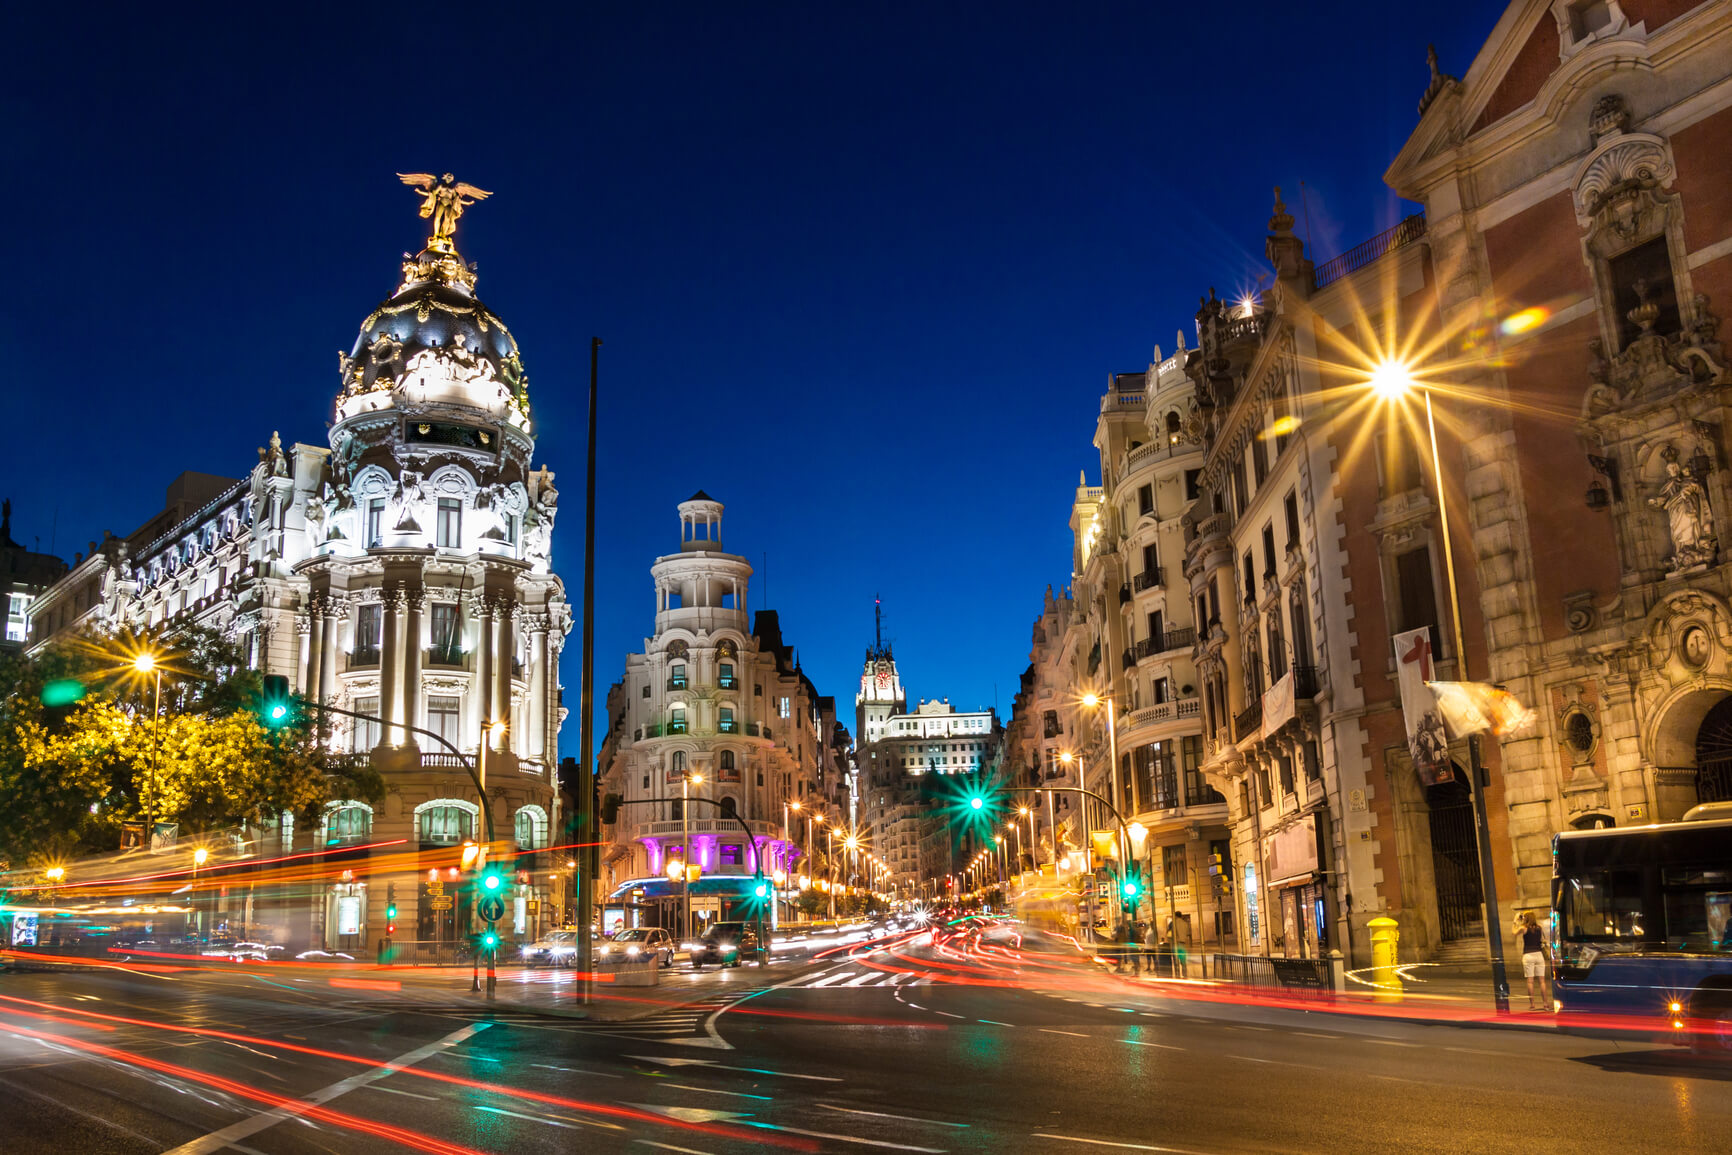 SUMMER: Non-stop from San Juan, Puerto Rico to Madrid, Spain for only $459 USD roundtrip